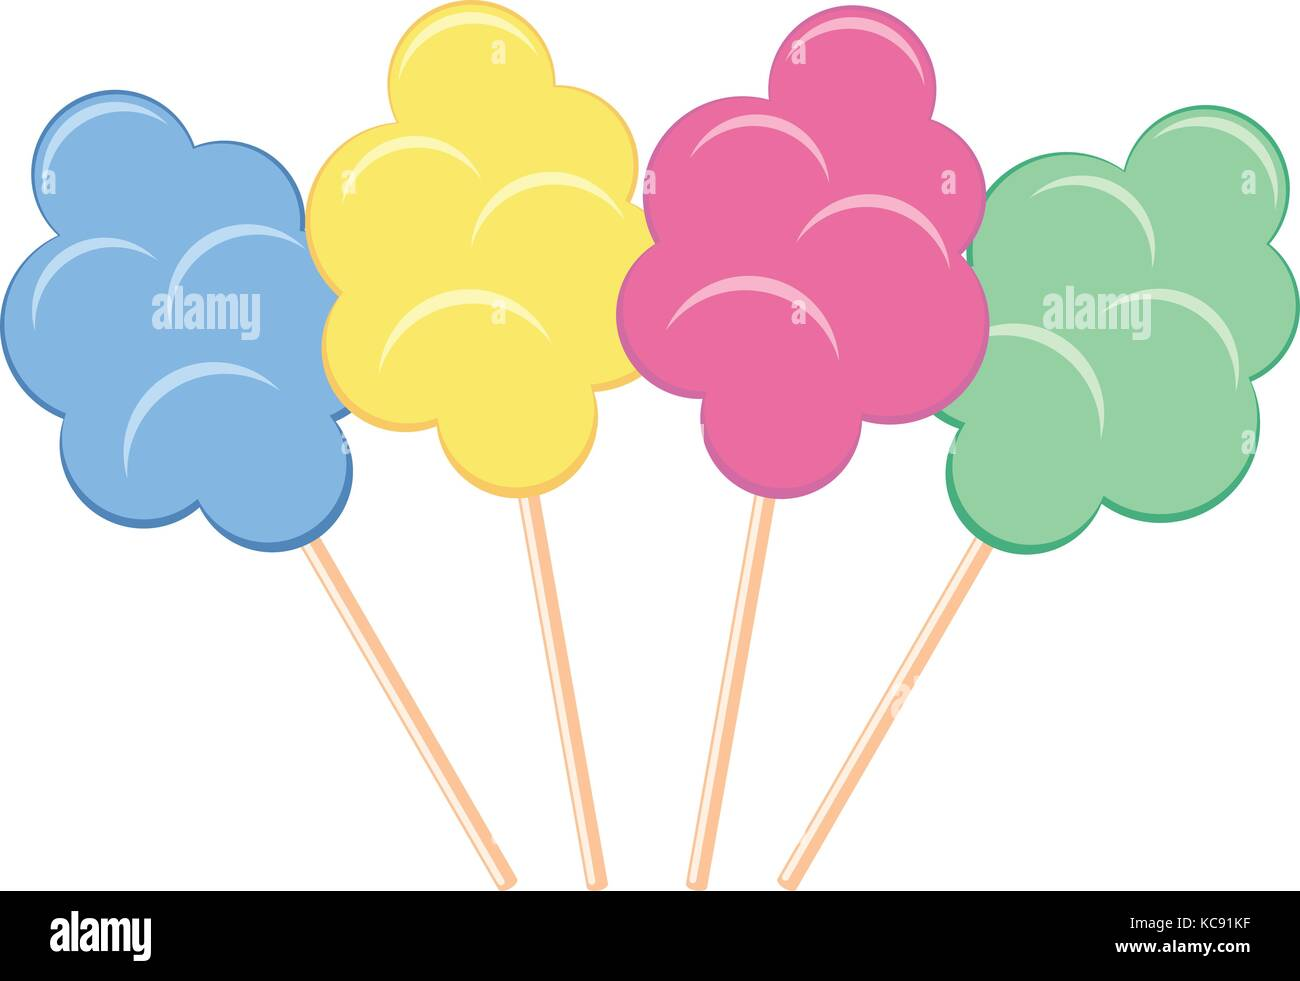 vector colorful candy cotton set isolated on white background. collection of sweet fluffy sugar clouds. - Stock Image